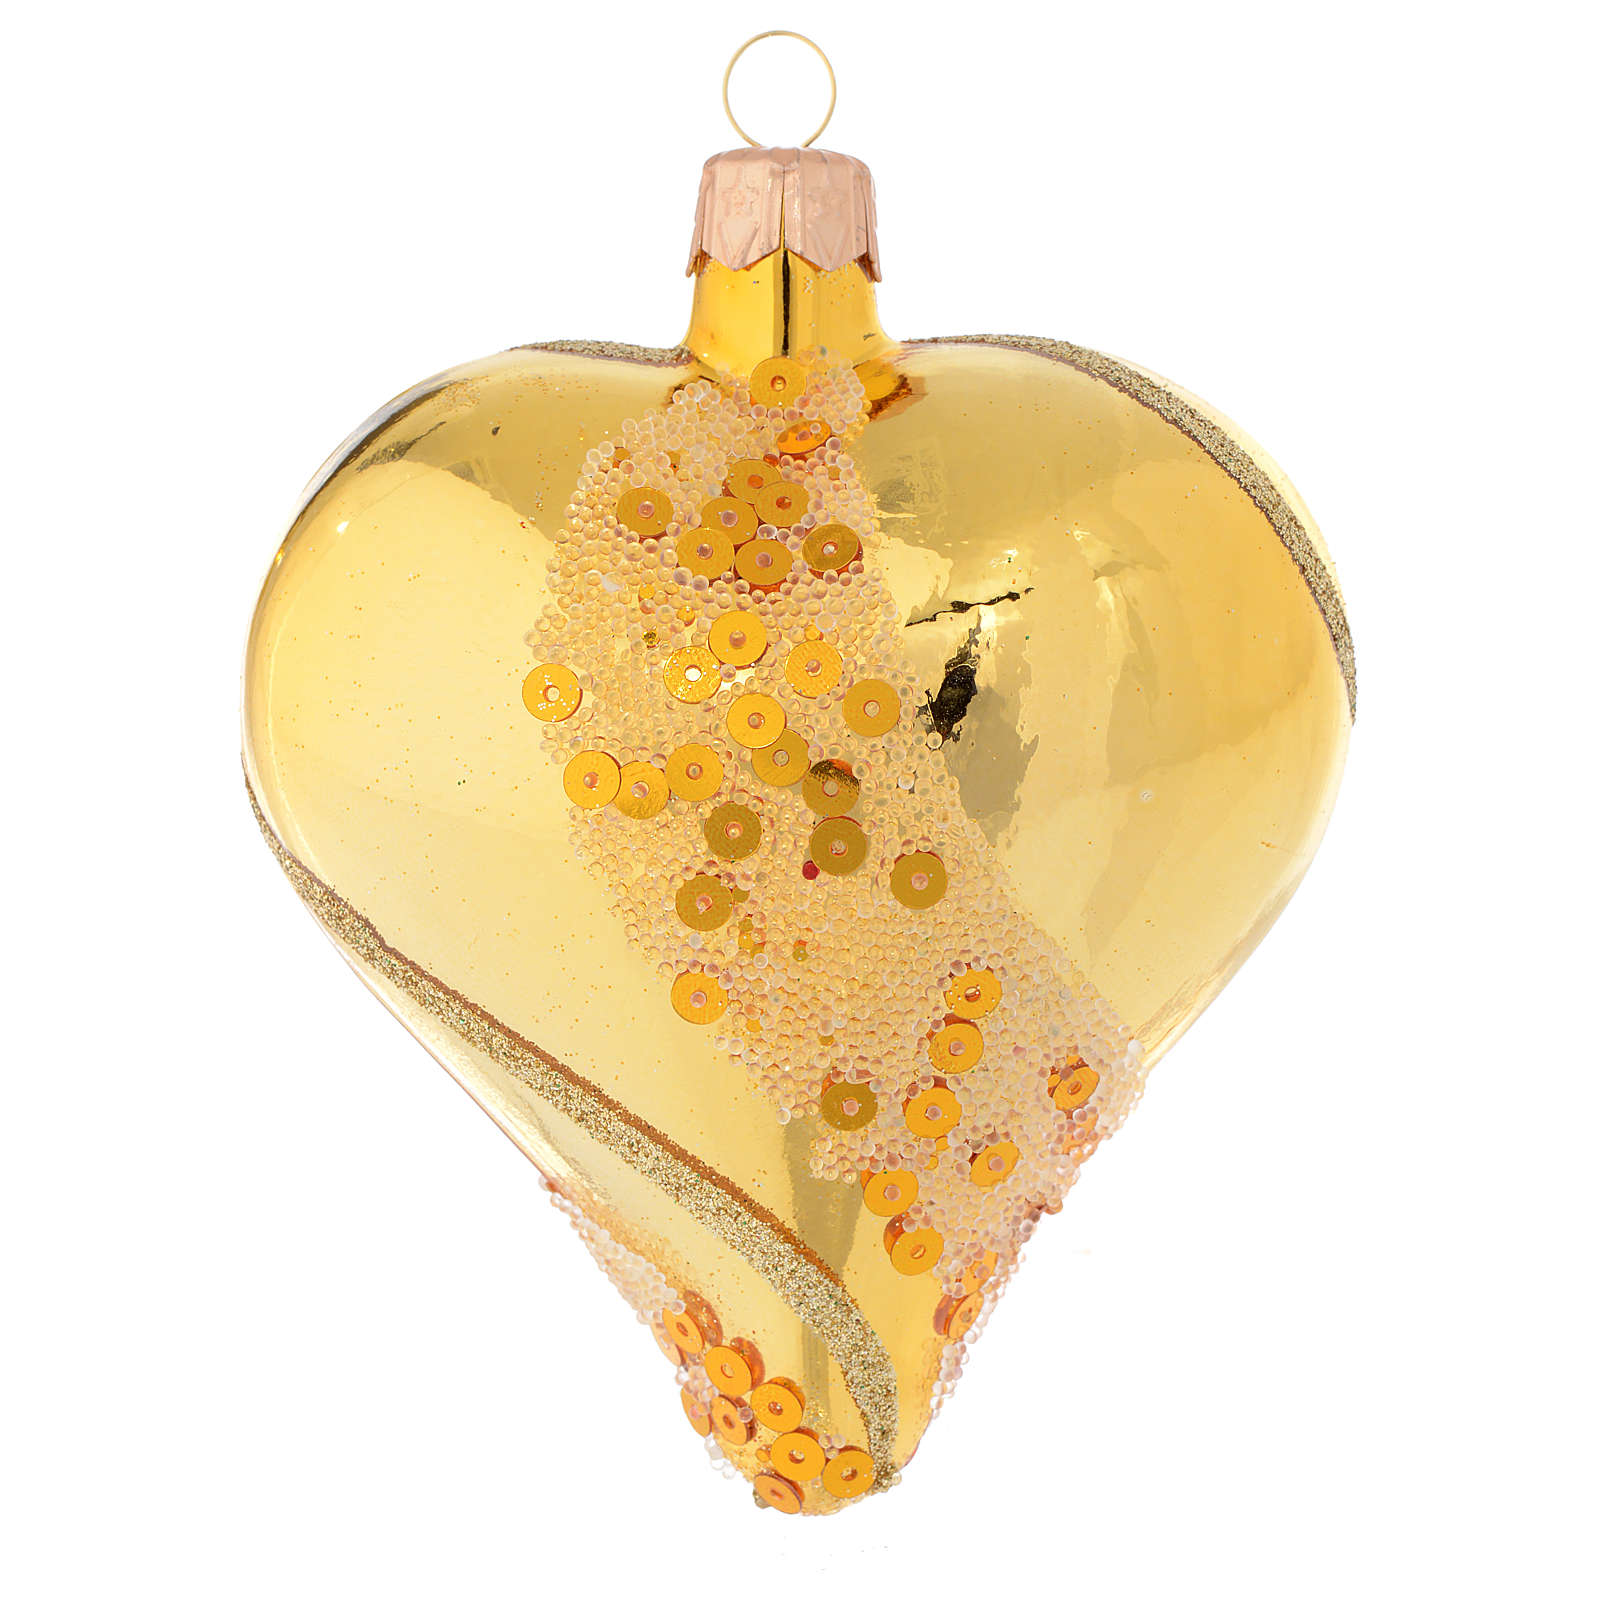 Heart Shaped Bauble in gold blown glass with glitter decoration 100mm 4